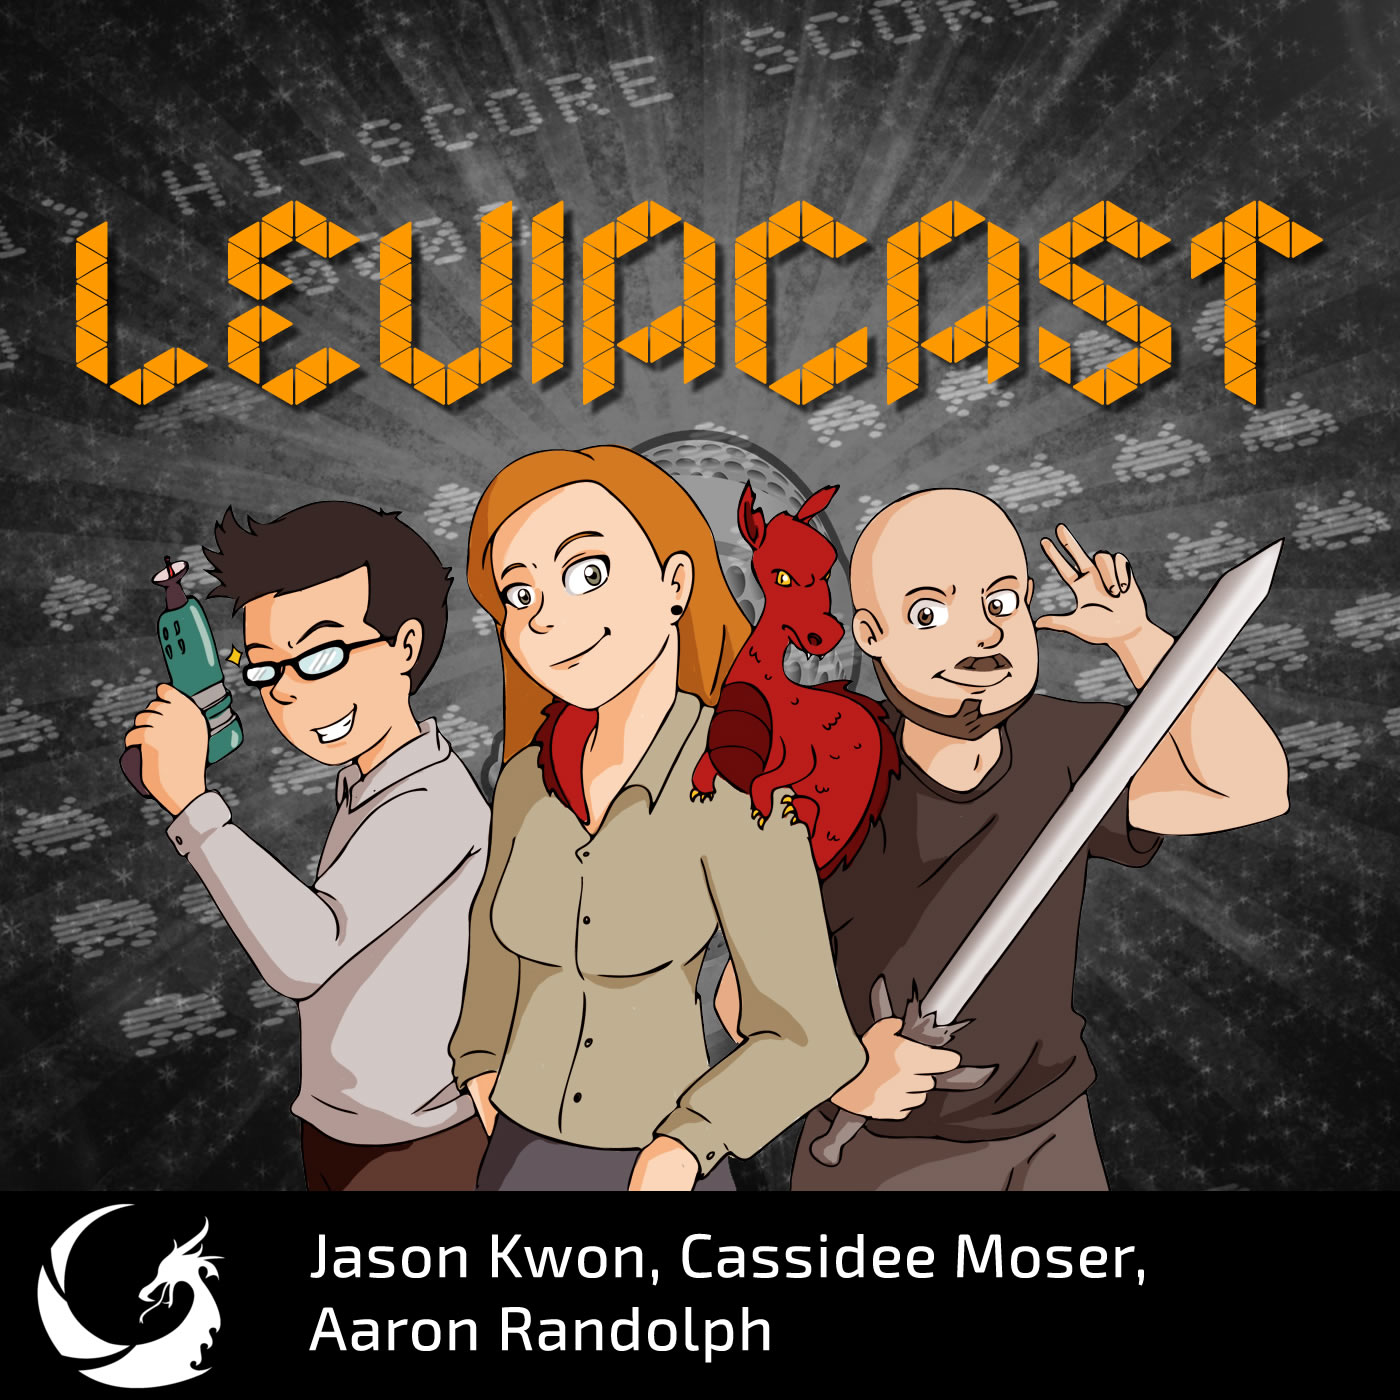 Leviacast Ep. 86: How About that Nintendo Direct?